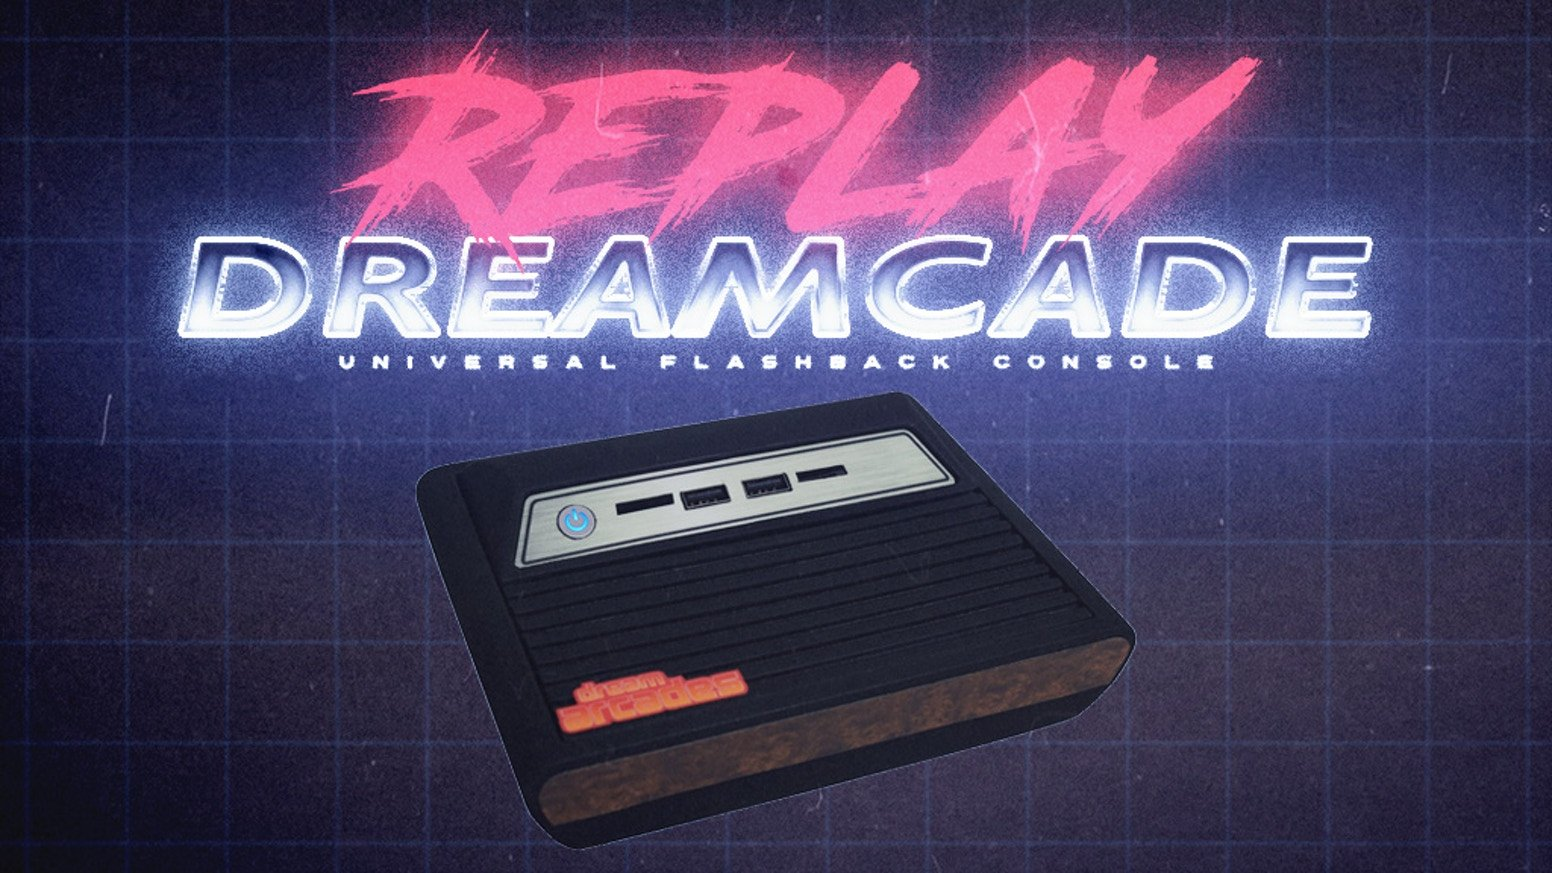 The Dreamcade Replay all-in-one emulator re-sparks fiery debate over